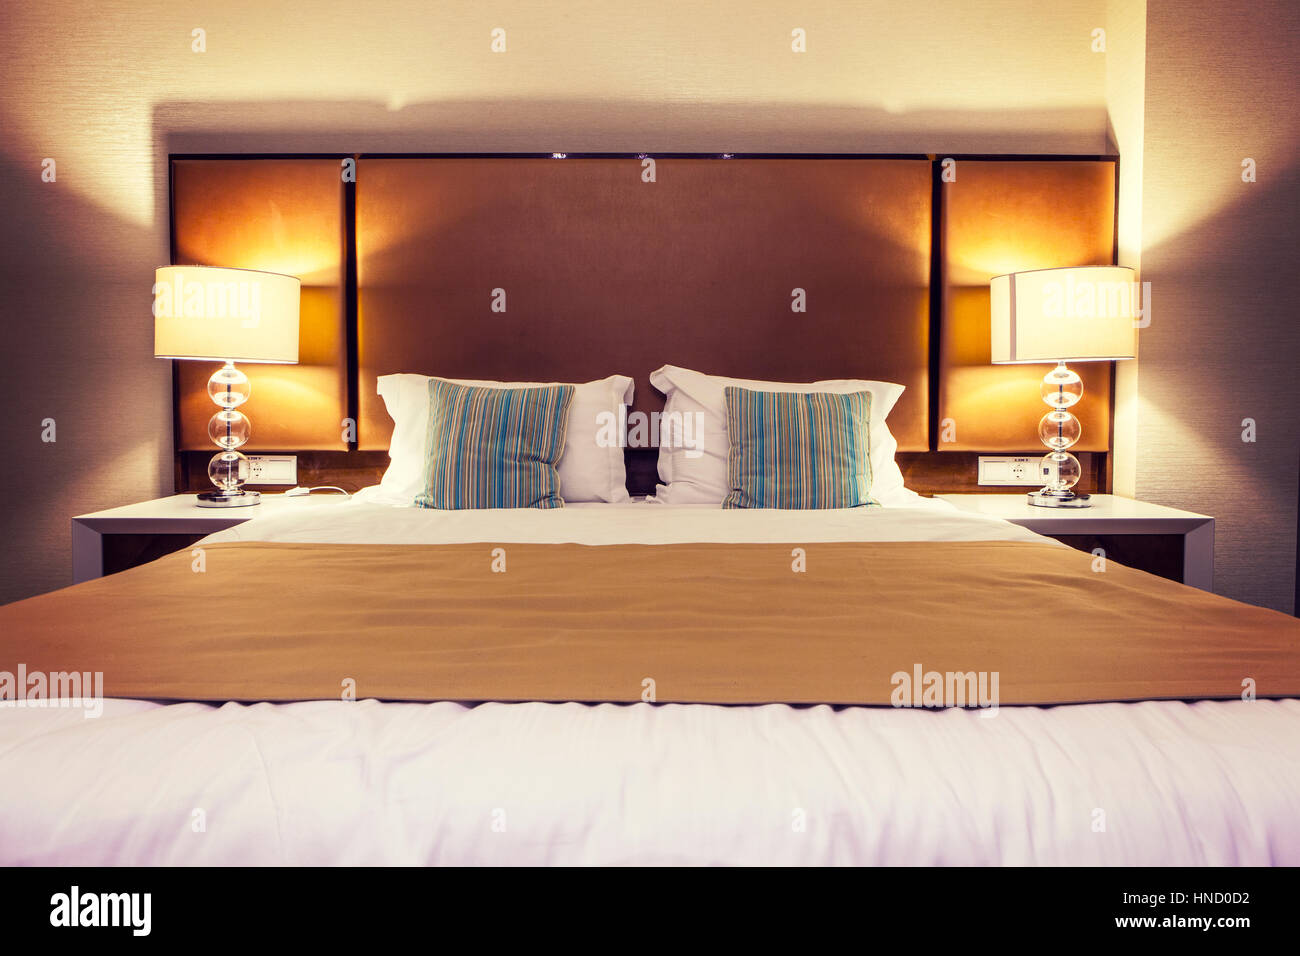 front view of hotel bed with light on on the side and colorful